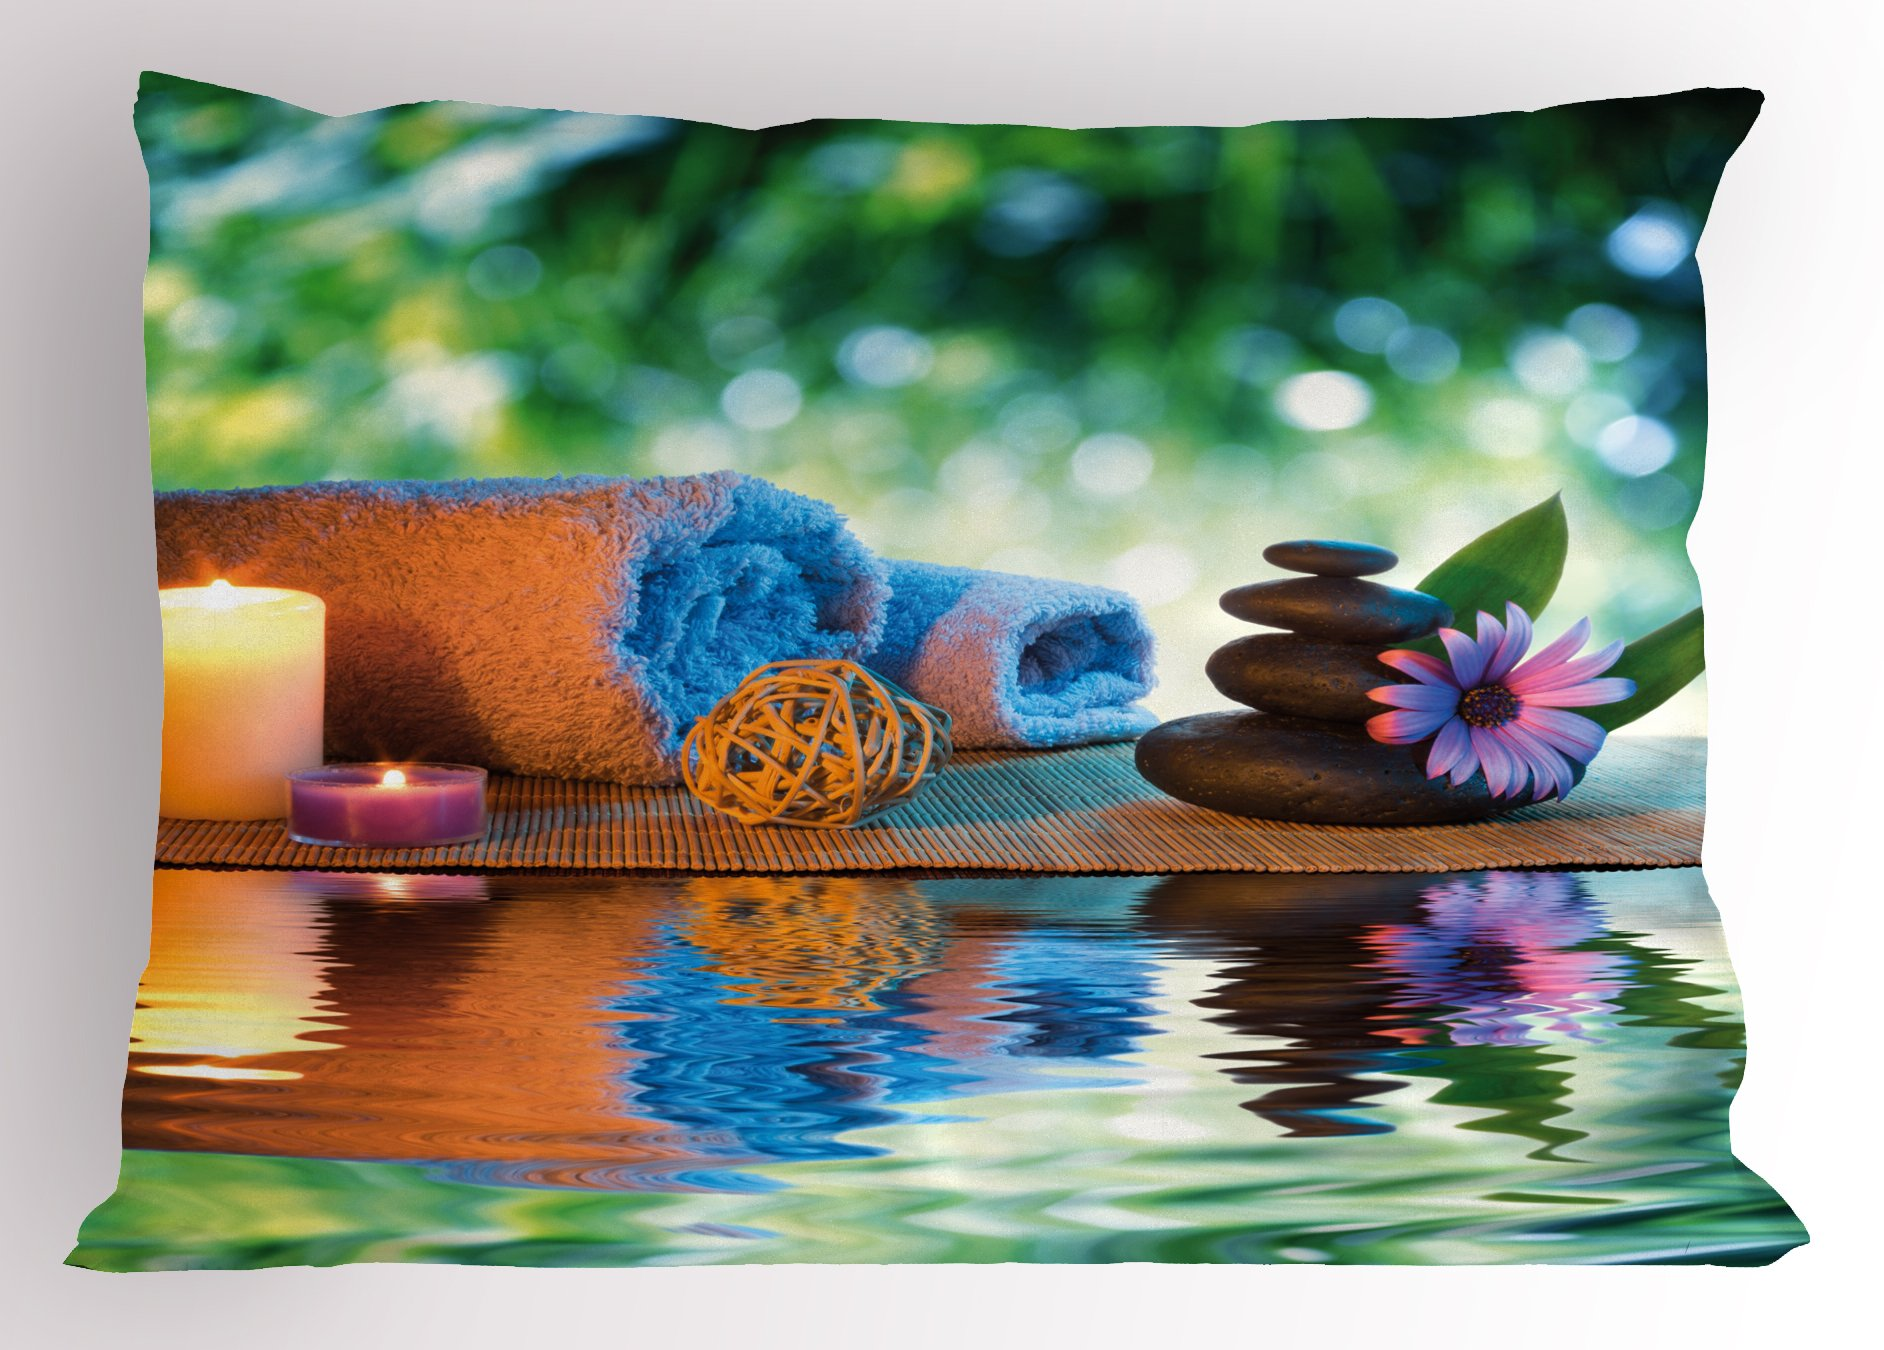 Lunarable Spa Pillow Sham, Asian Culture Inspiration Chinese Japanese Candles Zen Meditation Stones, Decorative Standard Size Printed Pillowcase, 26 X 20 inches, Green Orange Lavander